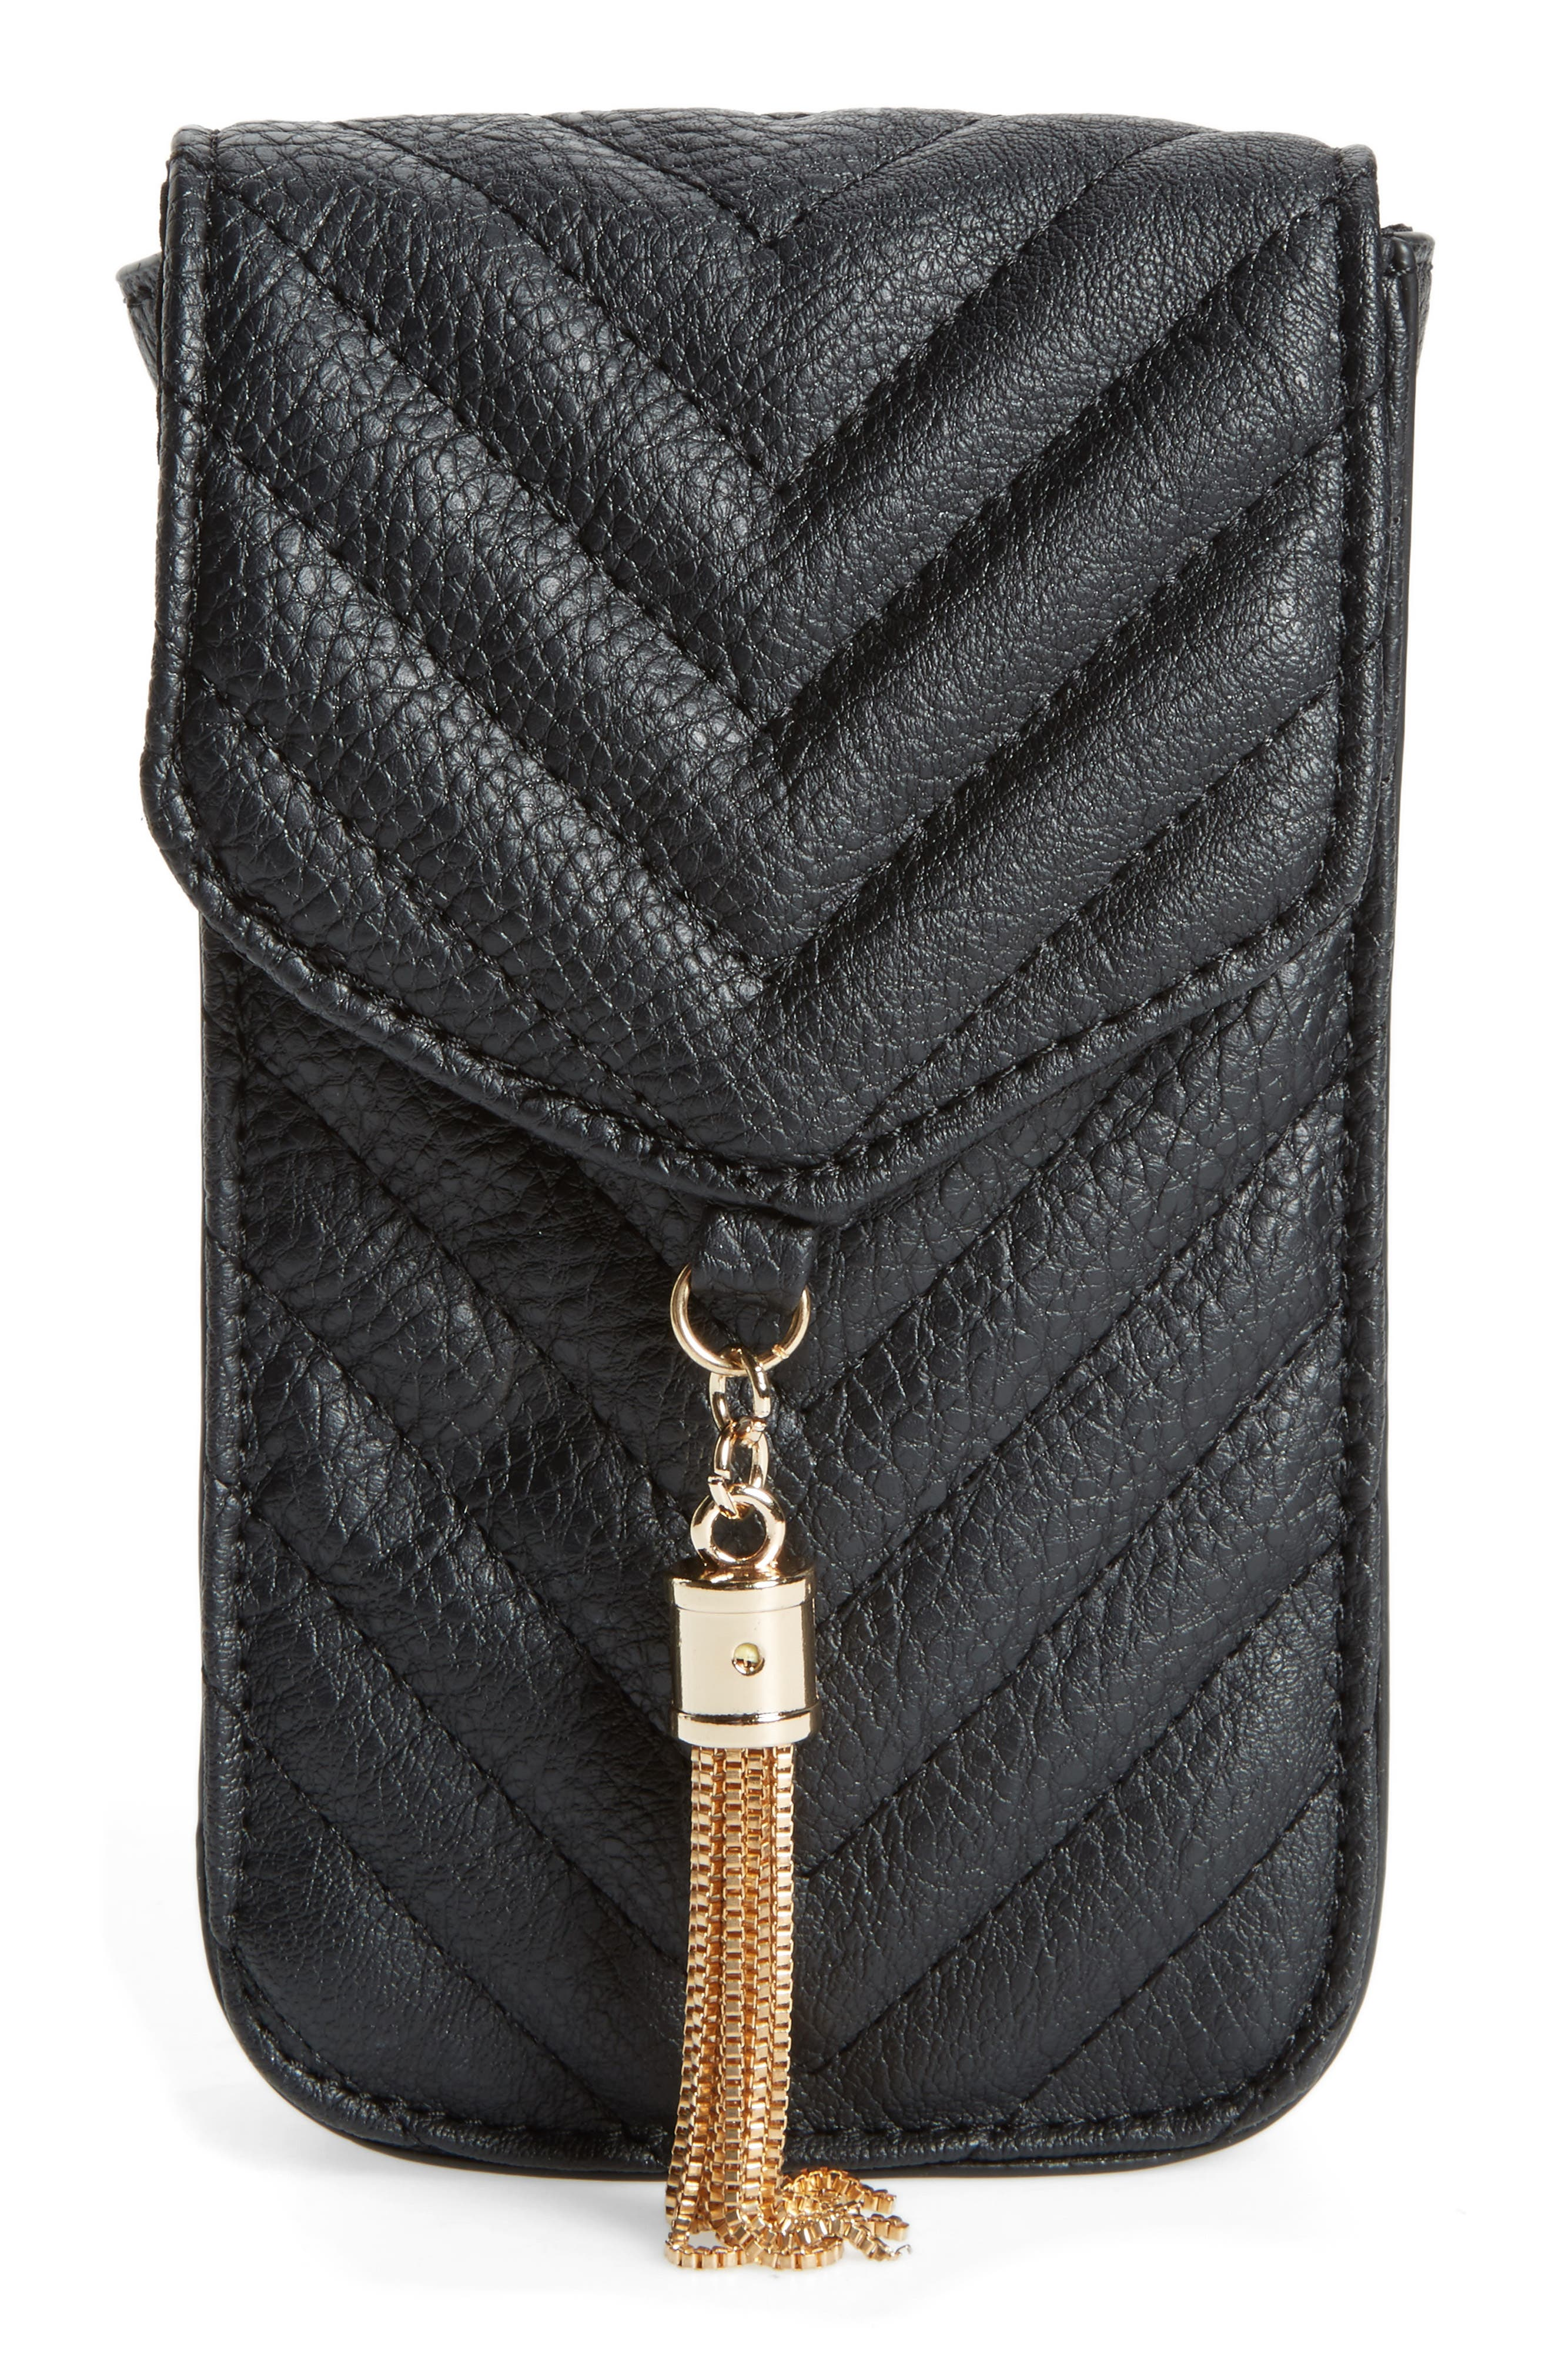 Amici Accessories Quilted Faux Leather Phone Crossbody Bag